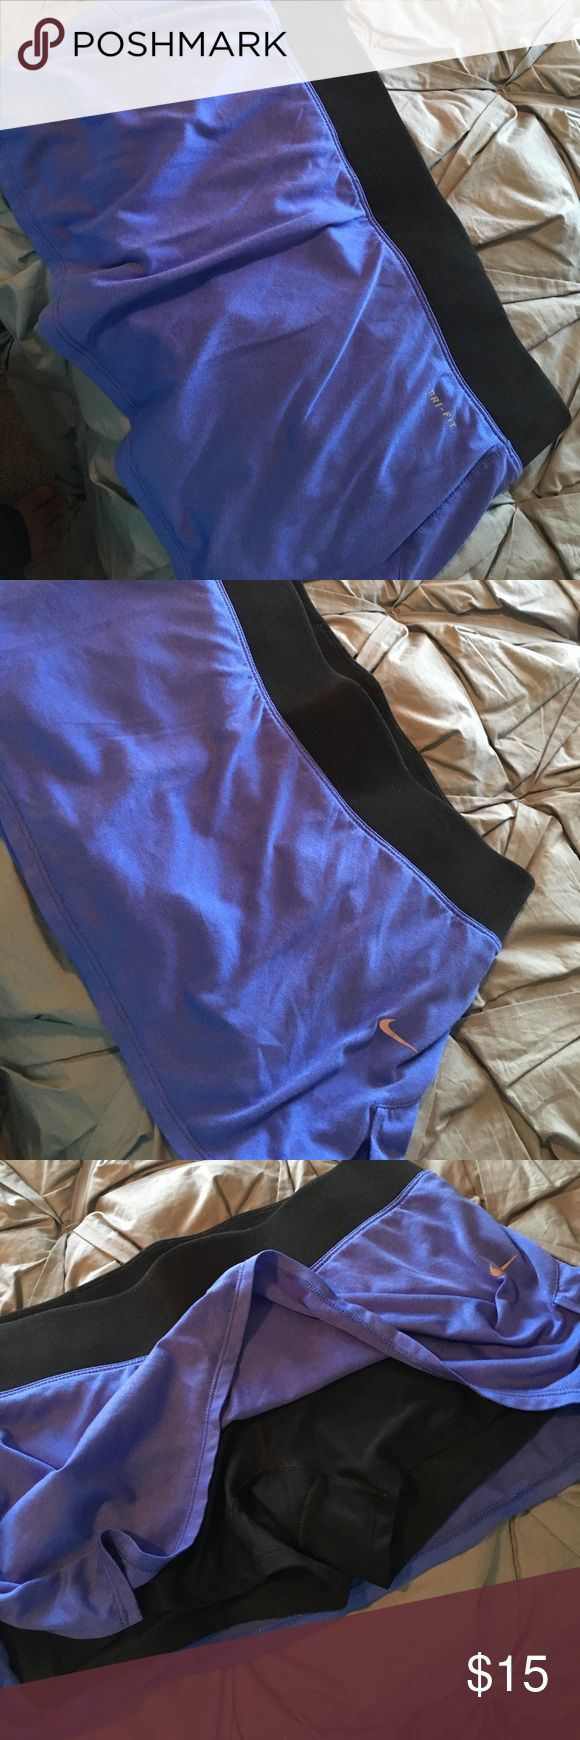 Blue Nike skirt! Cute, blue Nike skirt with shorts attached. Super comfortable and in great condition. They work great to workout in, tennis, golf, etc. love them!! Nike Other